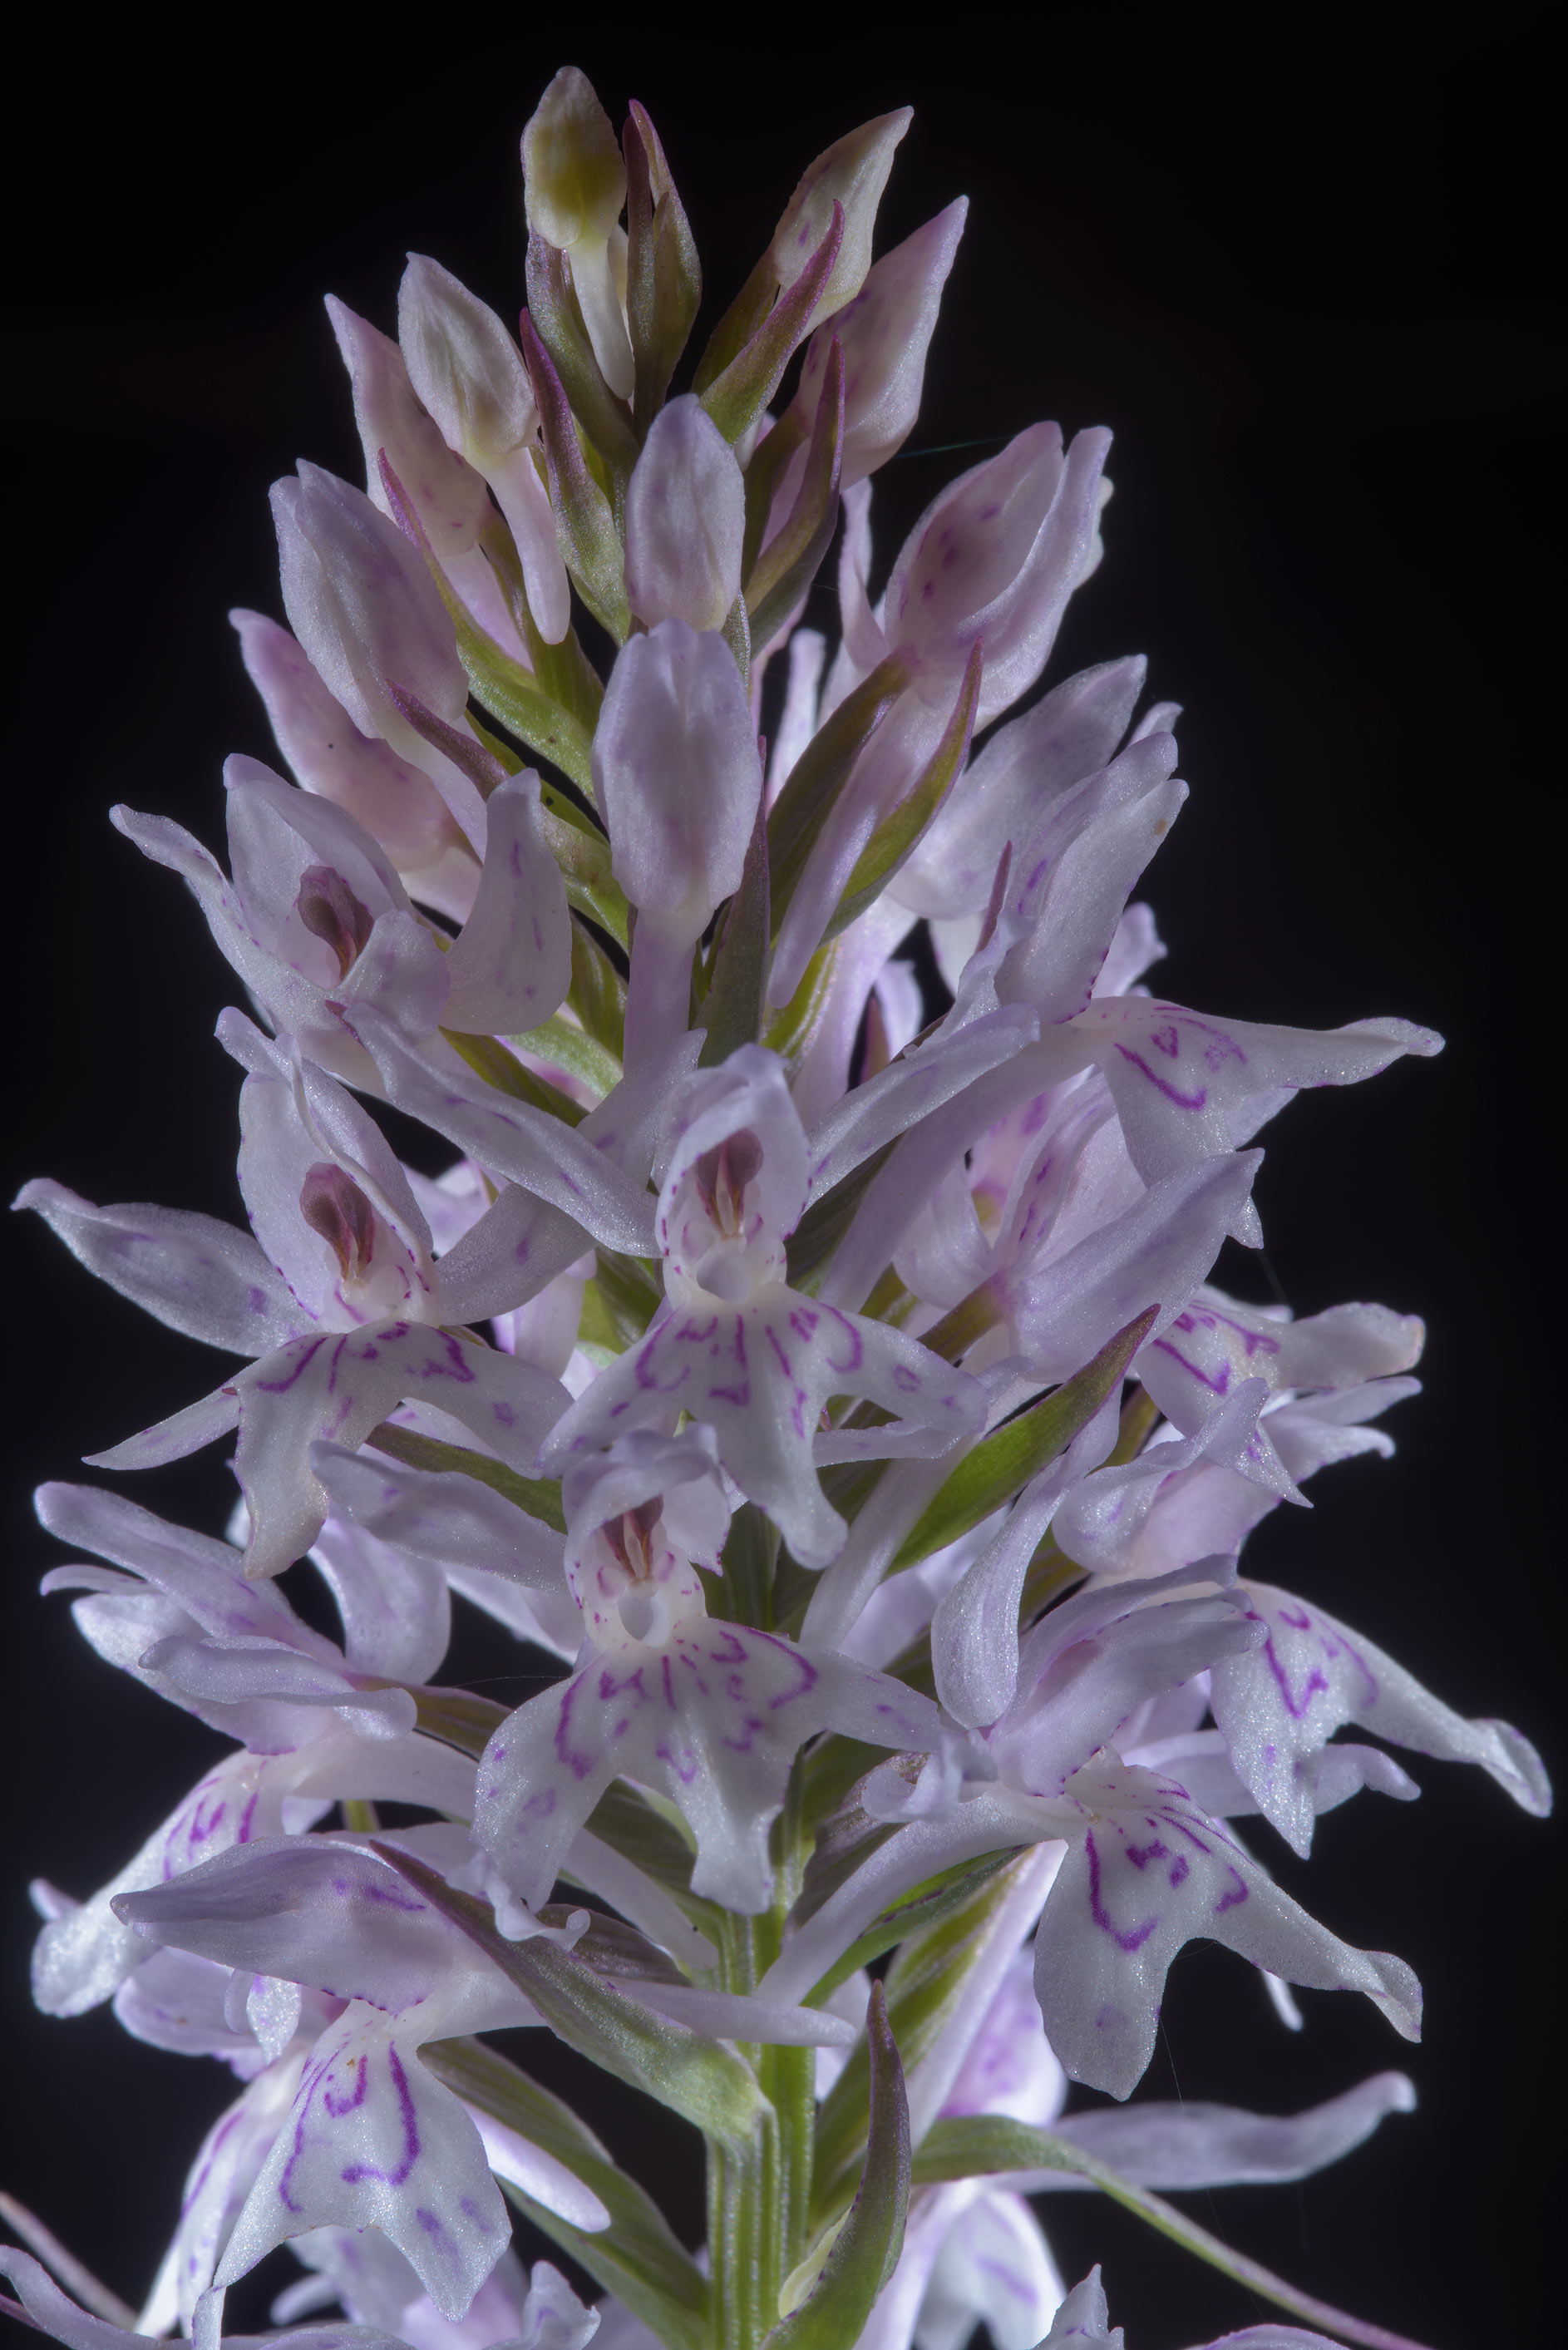 Pink flower spike of heath spotted-orchid...miles north from St.Petersburg. Russia